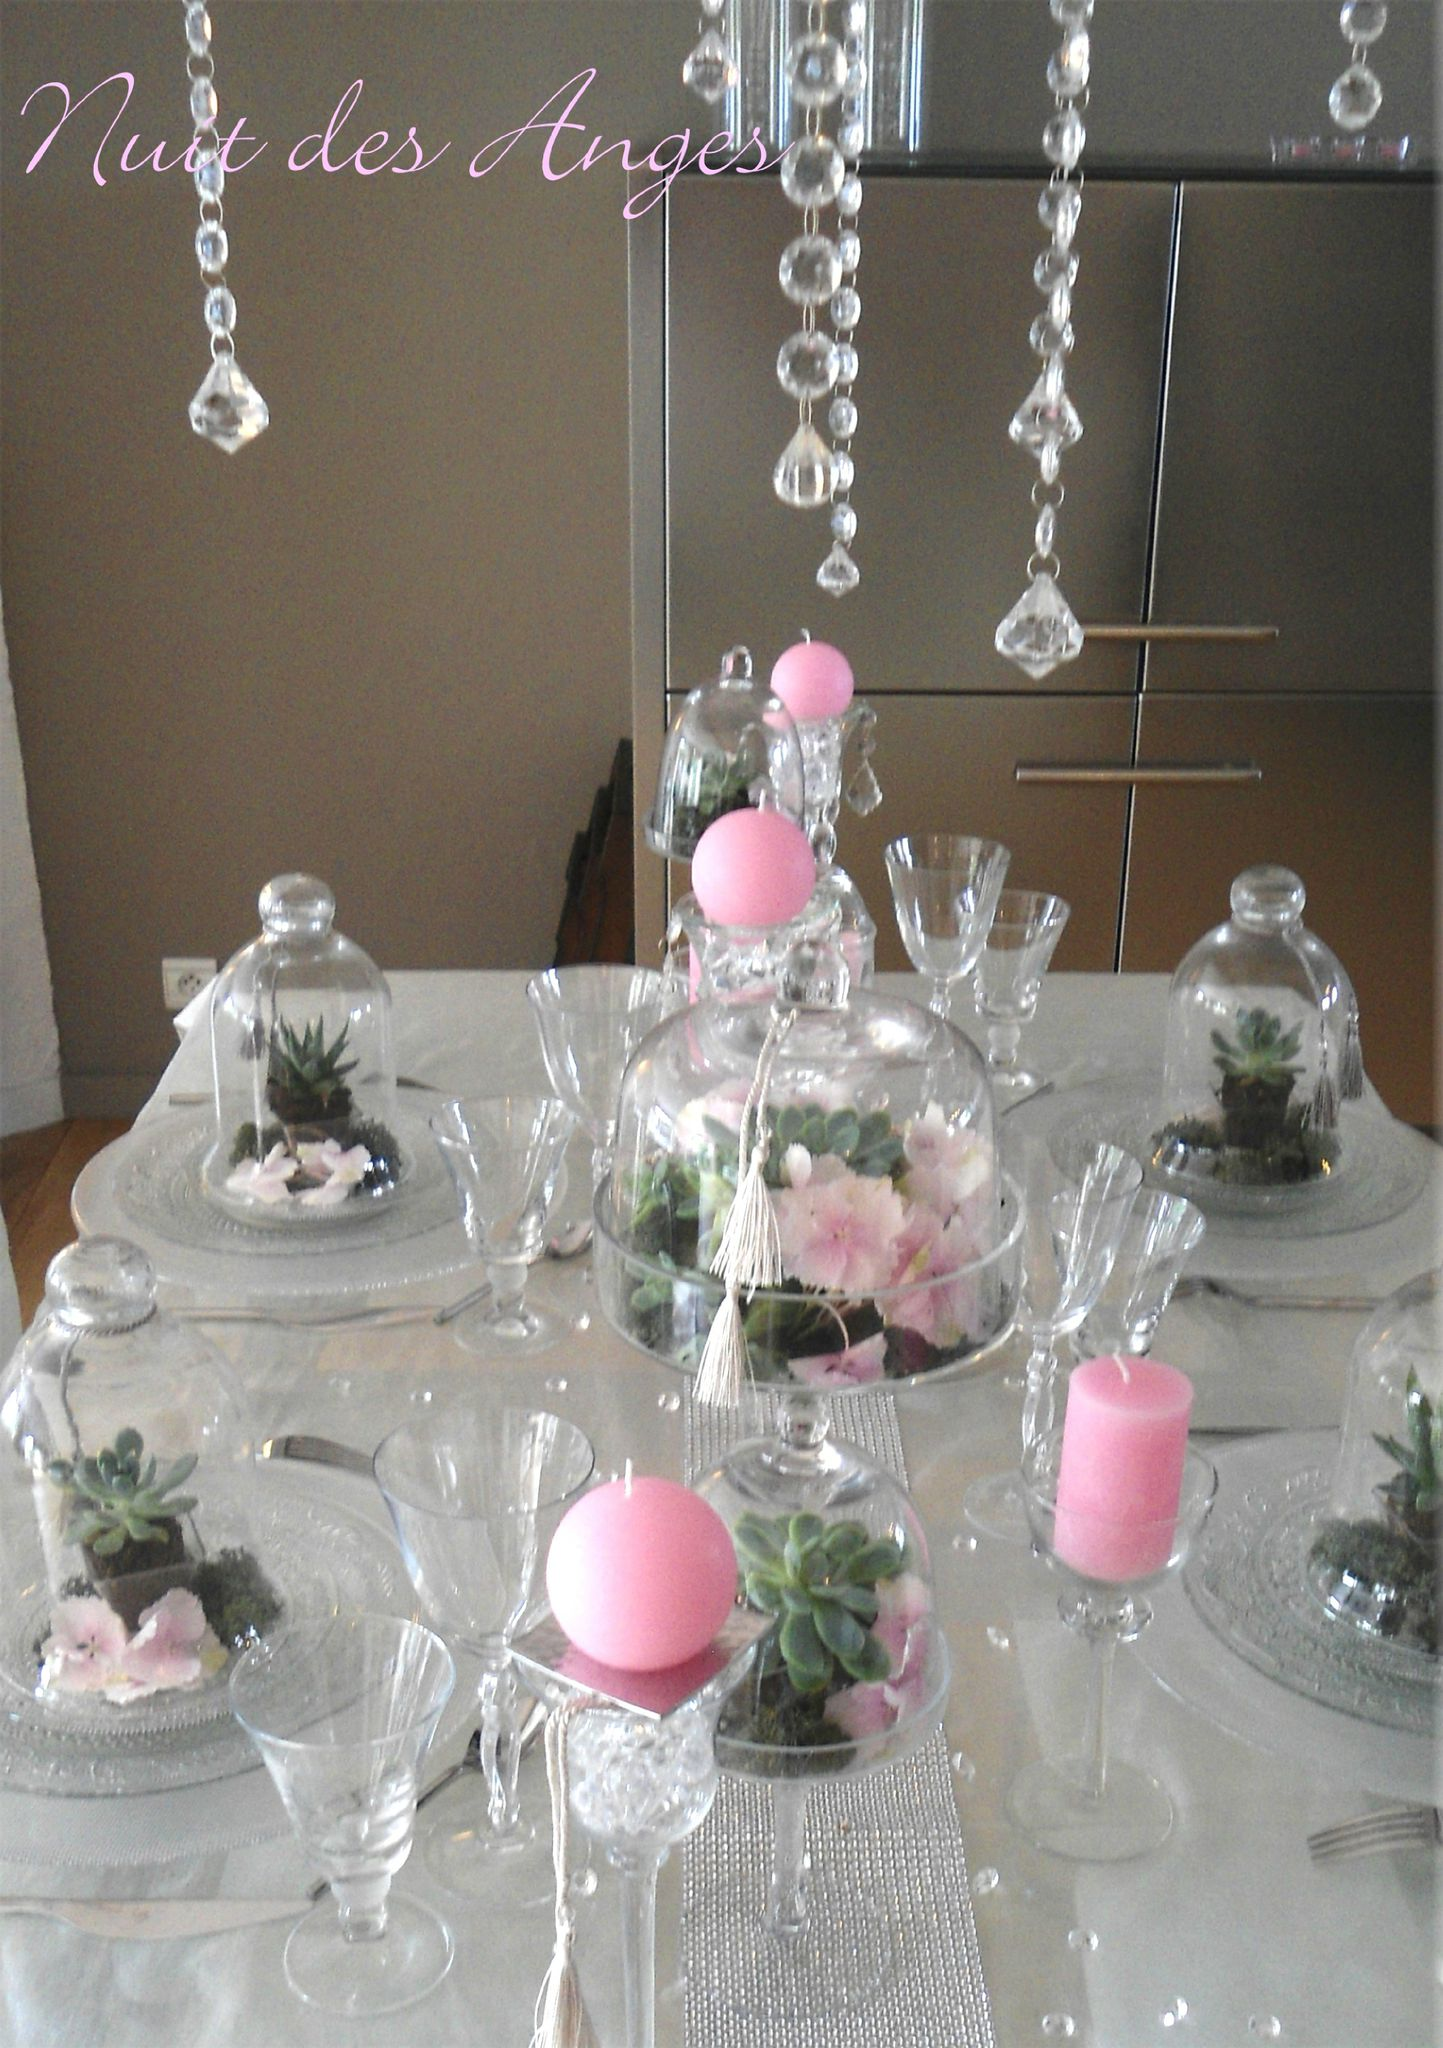 deco de table mariage rose et blanc. Black Bedroom Furniture Sets. Home Design Ideas